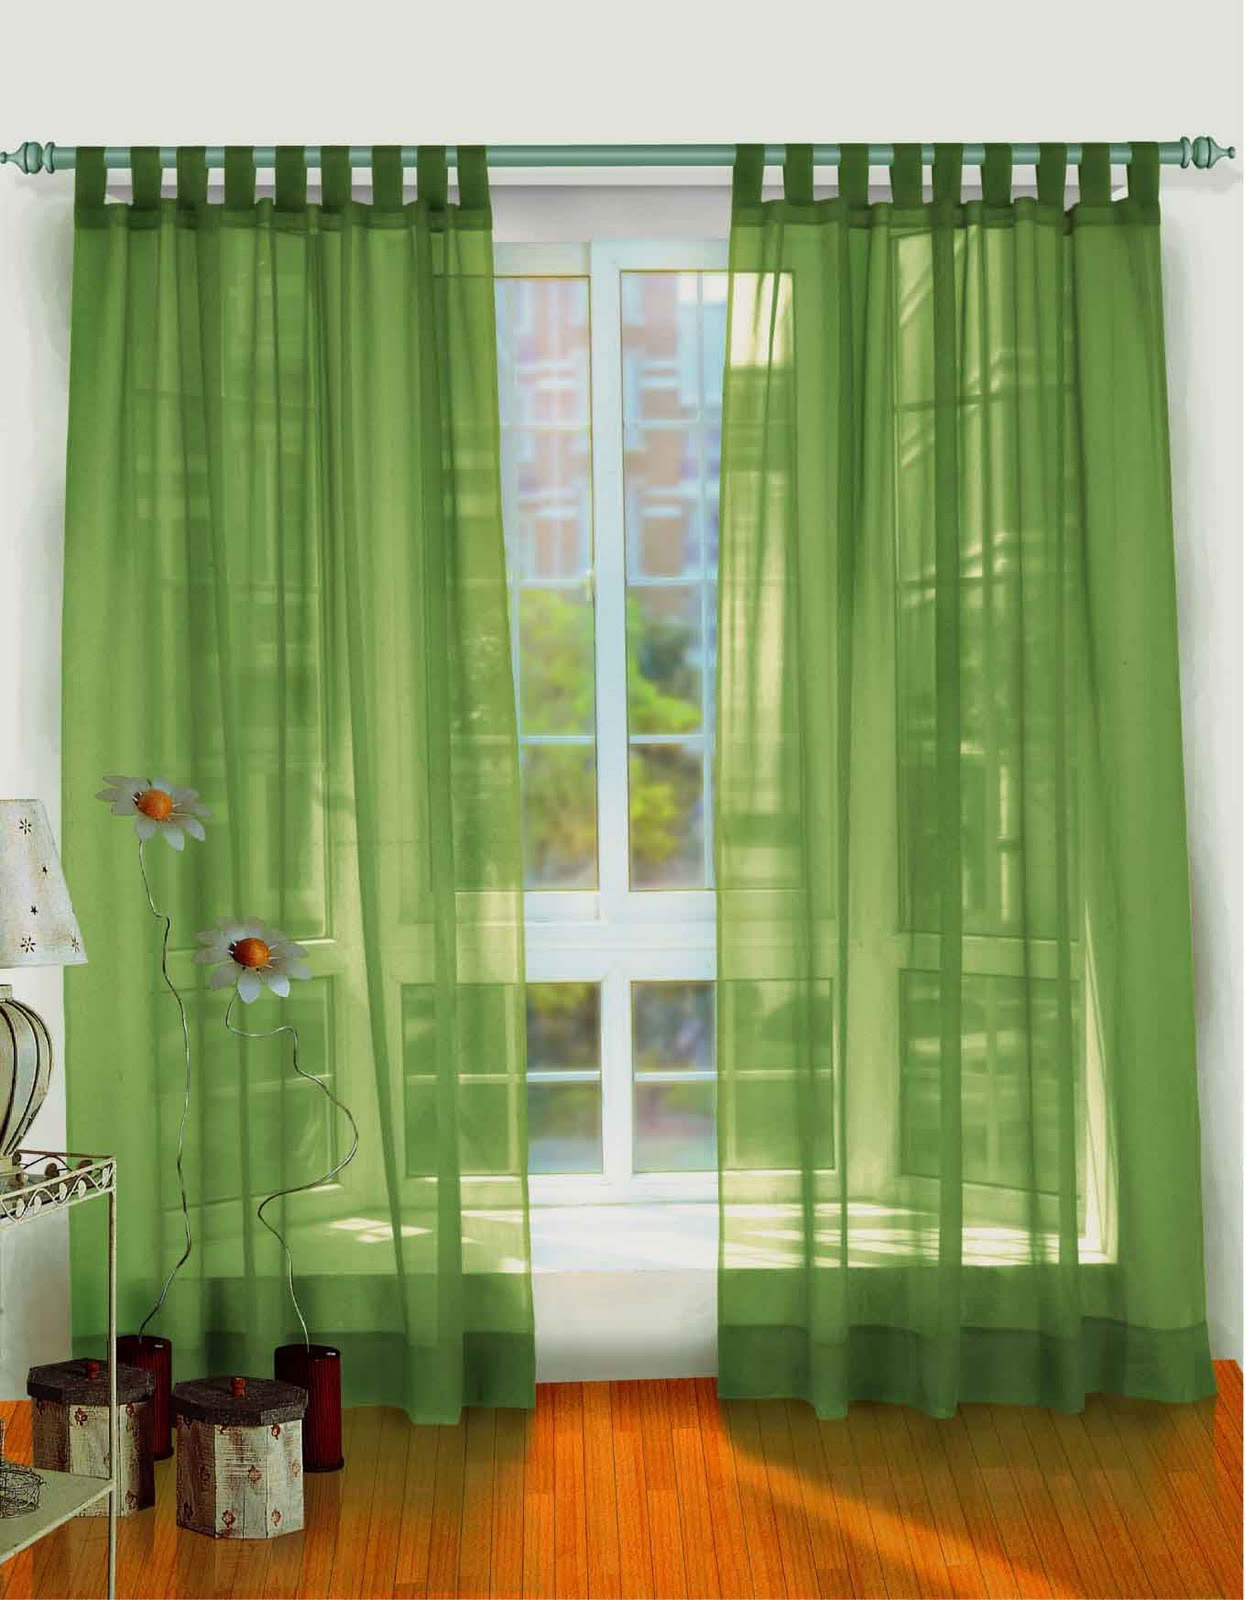 Curtain Designs Ideas: Modern Furniture: Living Room Curtains Ideas 2011